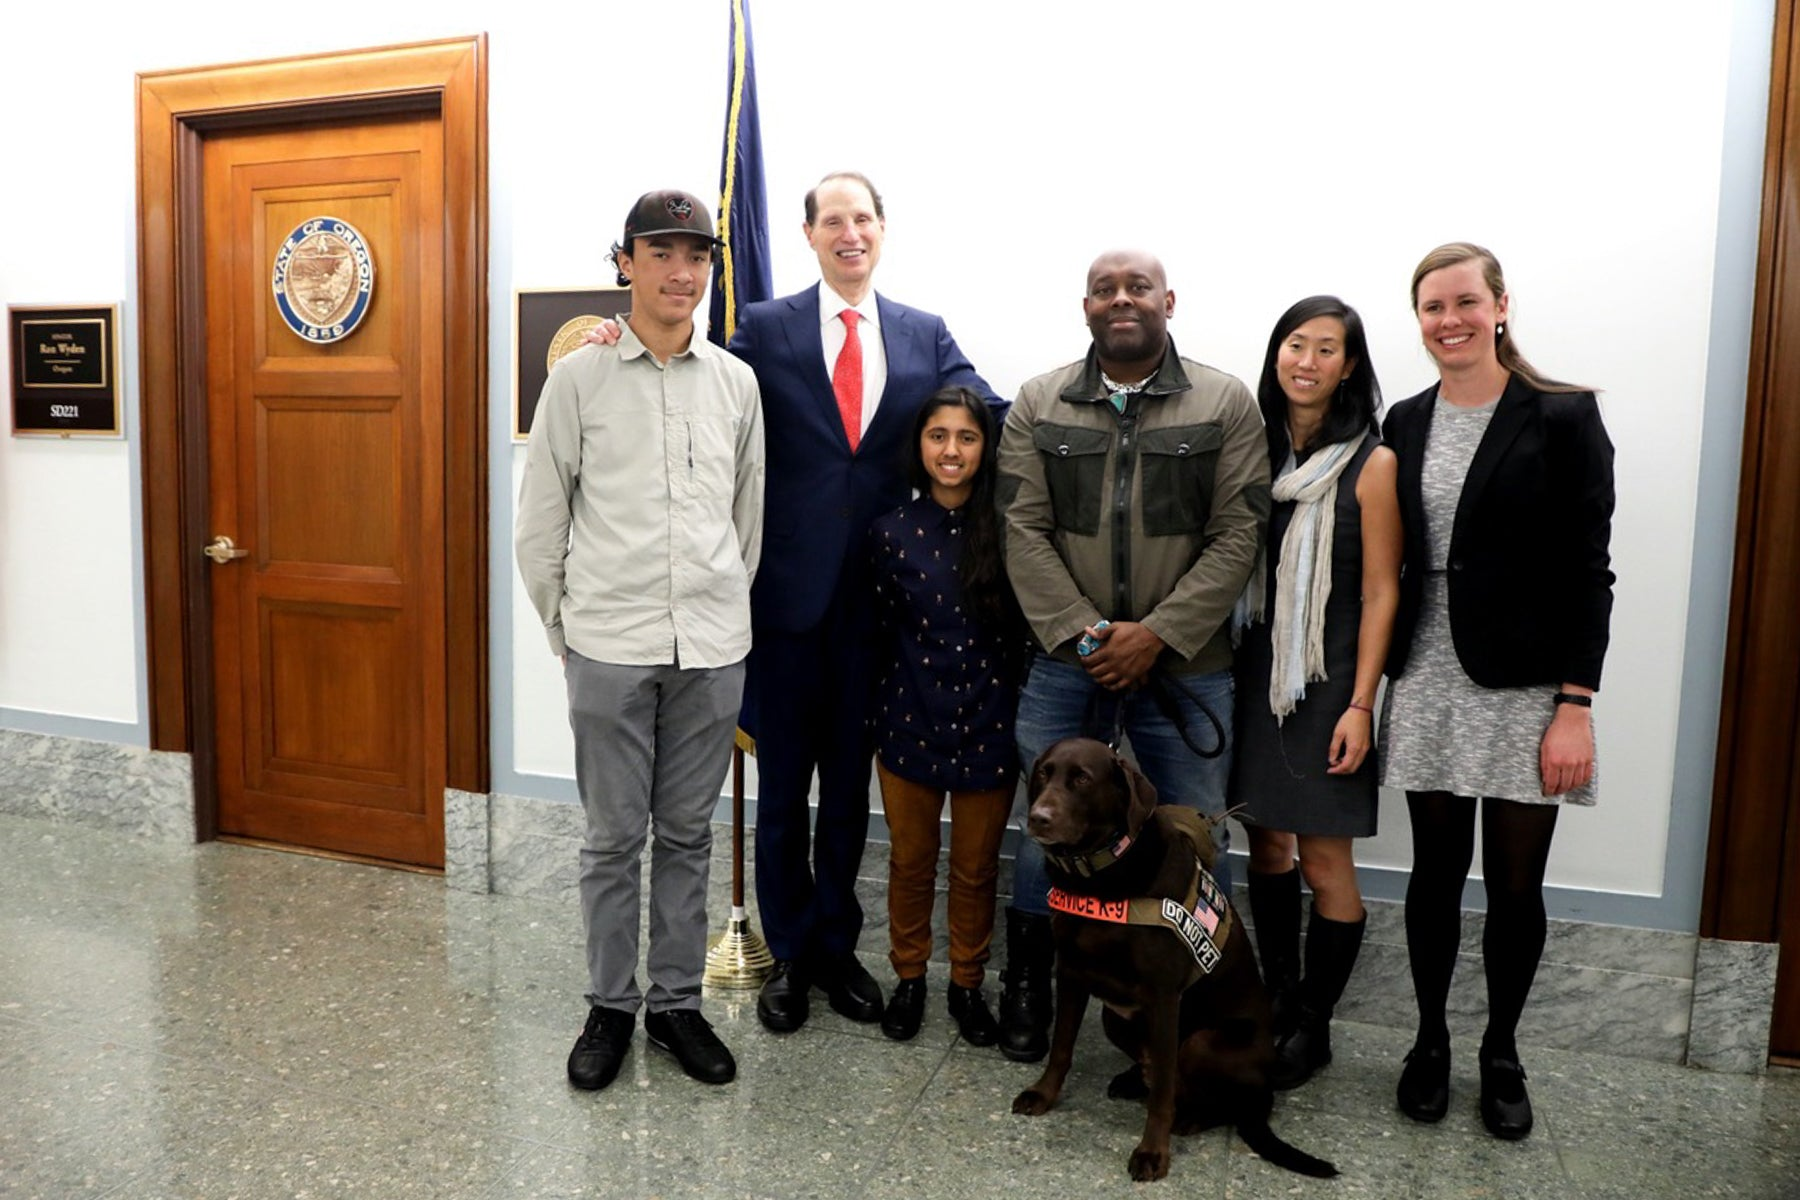 Chad and Axe and group of individuals take a photo with congressperson at Oregon state capital.